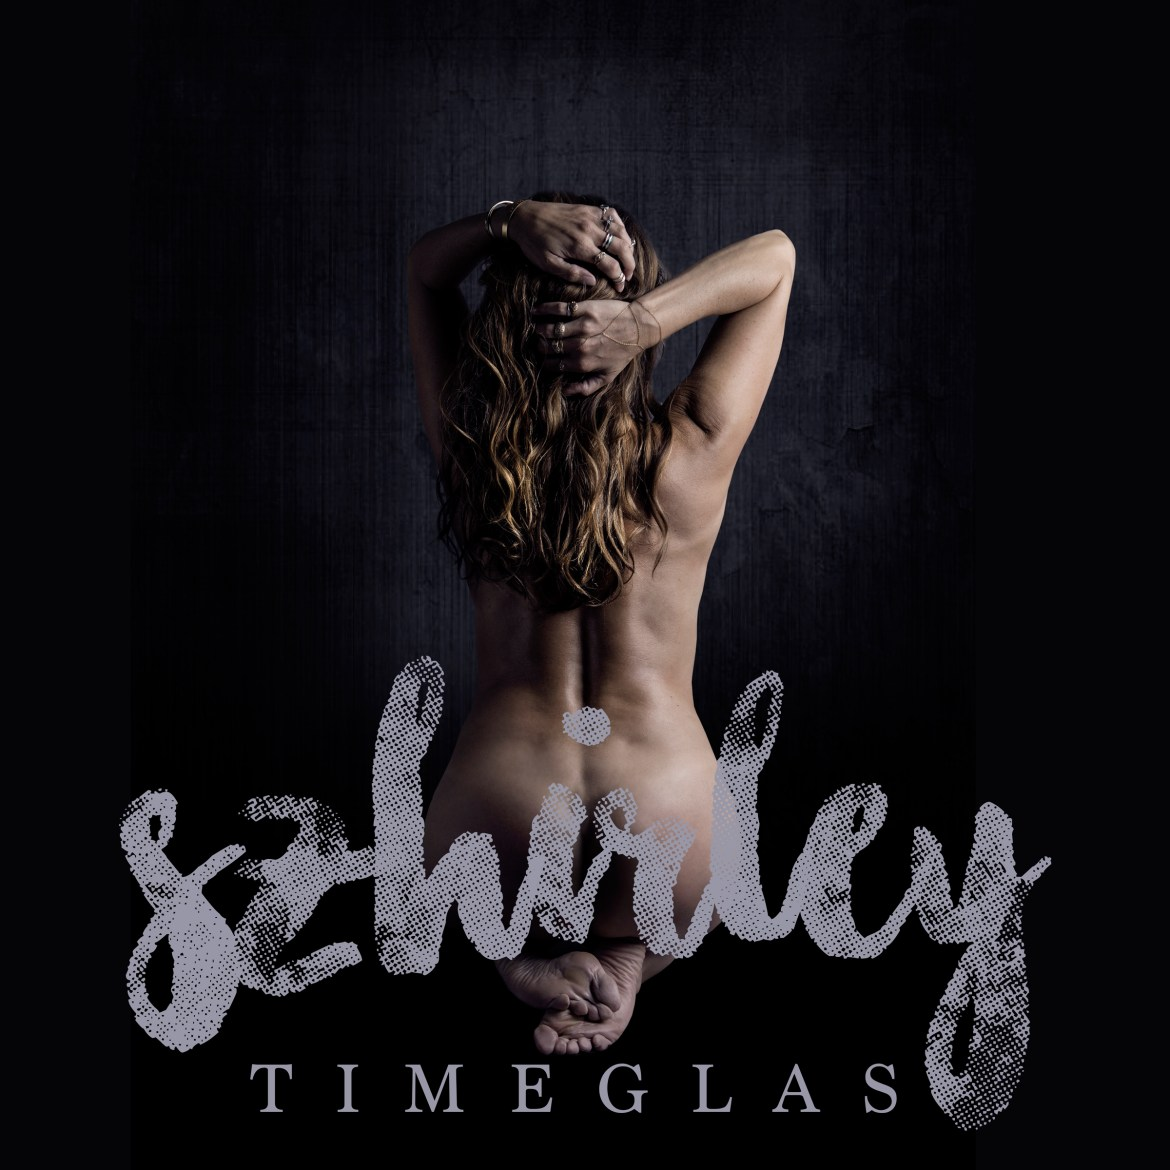 dn_szhirley_timeglas_cover06